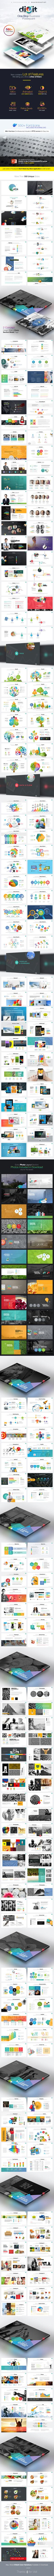 Digit - One-Stop Business PowerPoint. Take your presentation to next level with this clean and creative template. It's highly organised, useful & easy customization. Fully editable layouts with vector elements, infographic, maps & cartoon graphics. We designed this product with love.